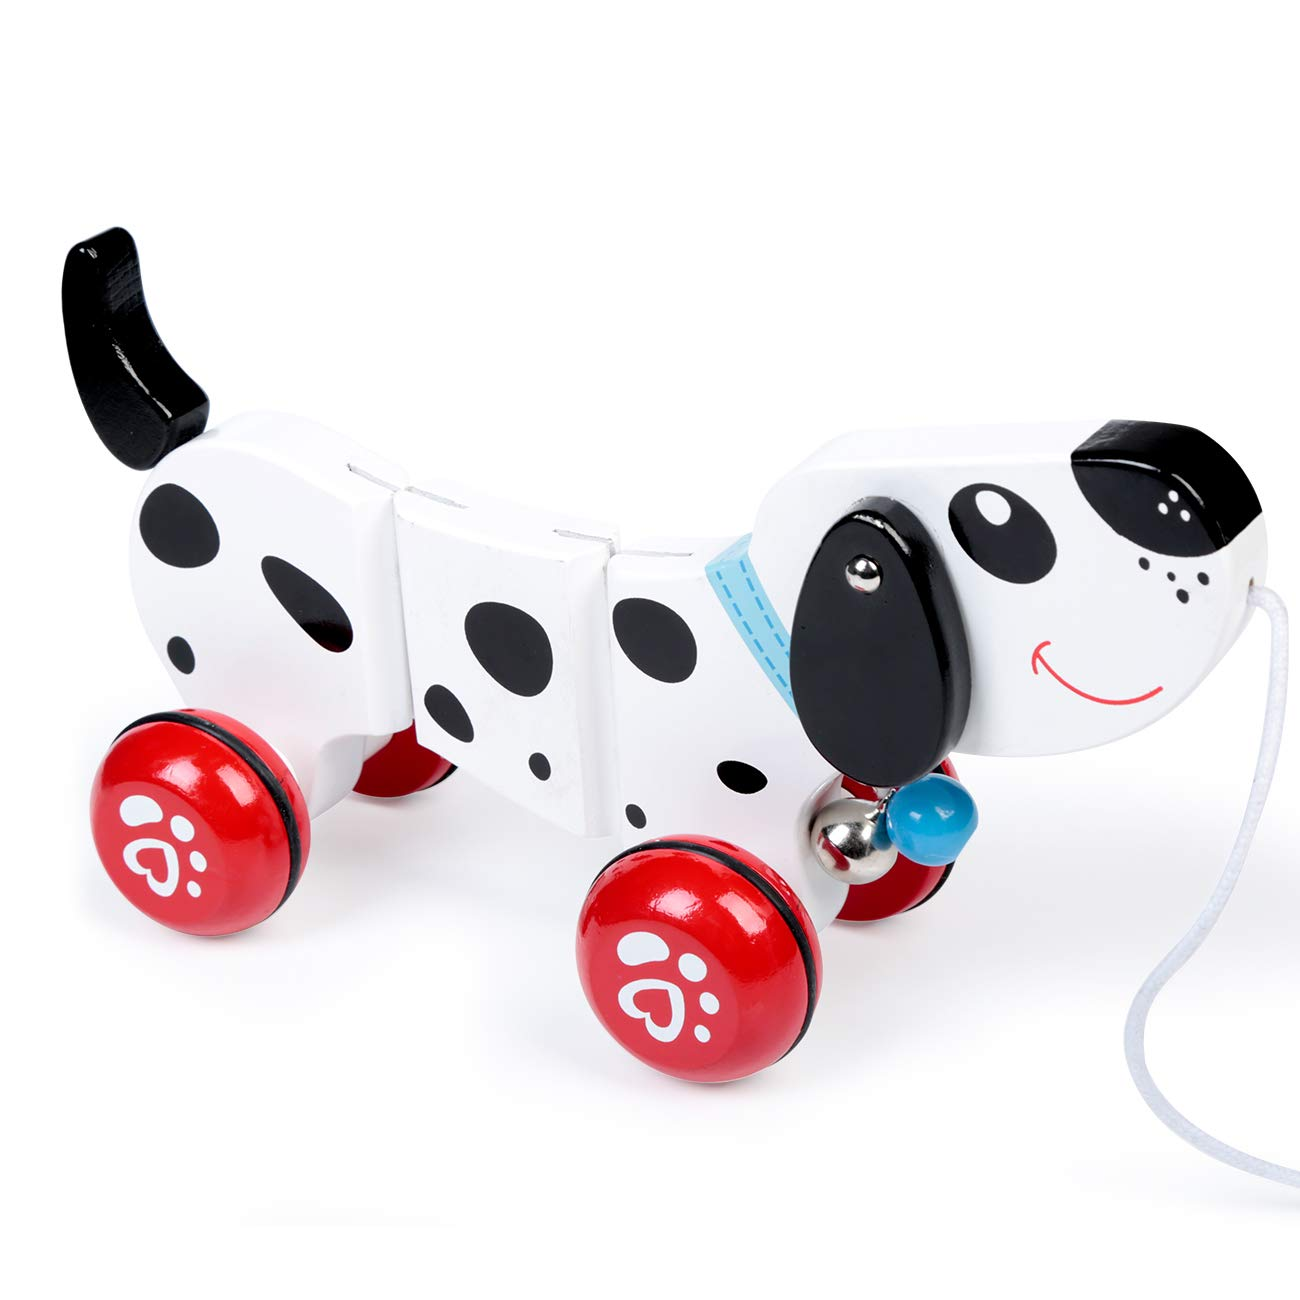 RUYU Puppy Wooden Push-Along Walking Toy for Beginner Walkers,Helps Fine Sports Skills, Spotty Dog, Rubber Rimmed Wheels for Easy Push and Pull Action, Classic Developmental Pull Toy